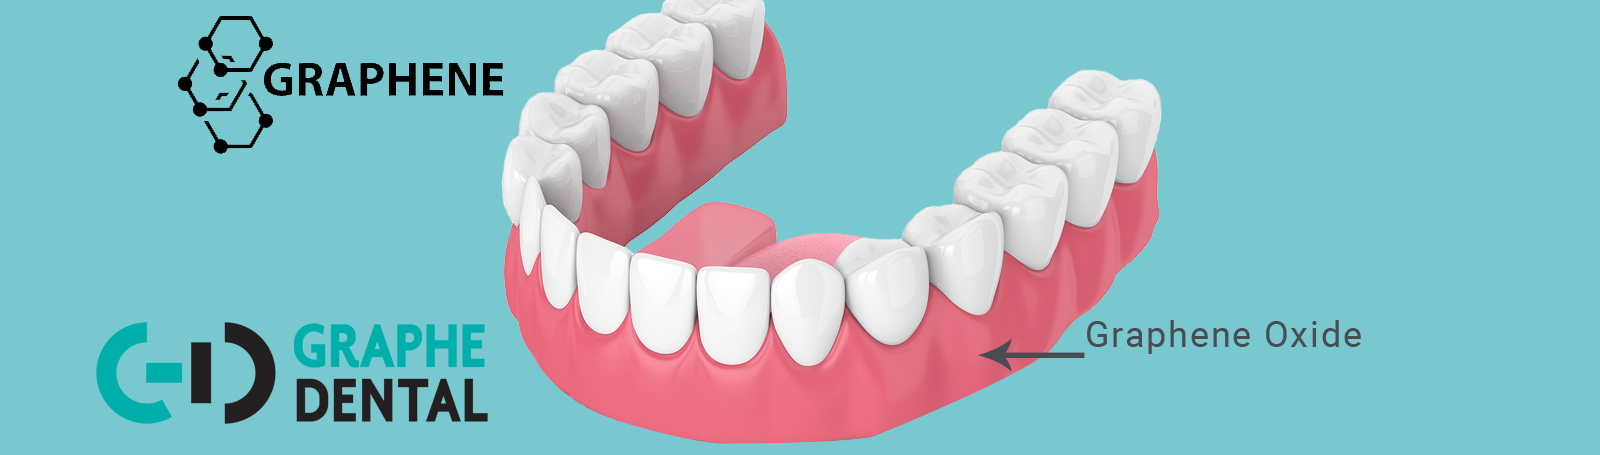 Graphical representation of a permanent dentures made with graphene oxide